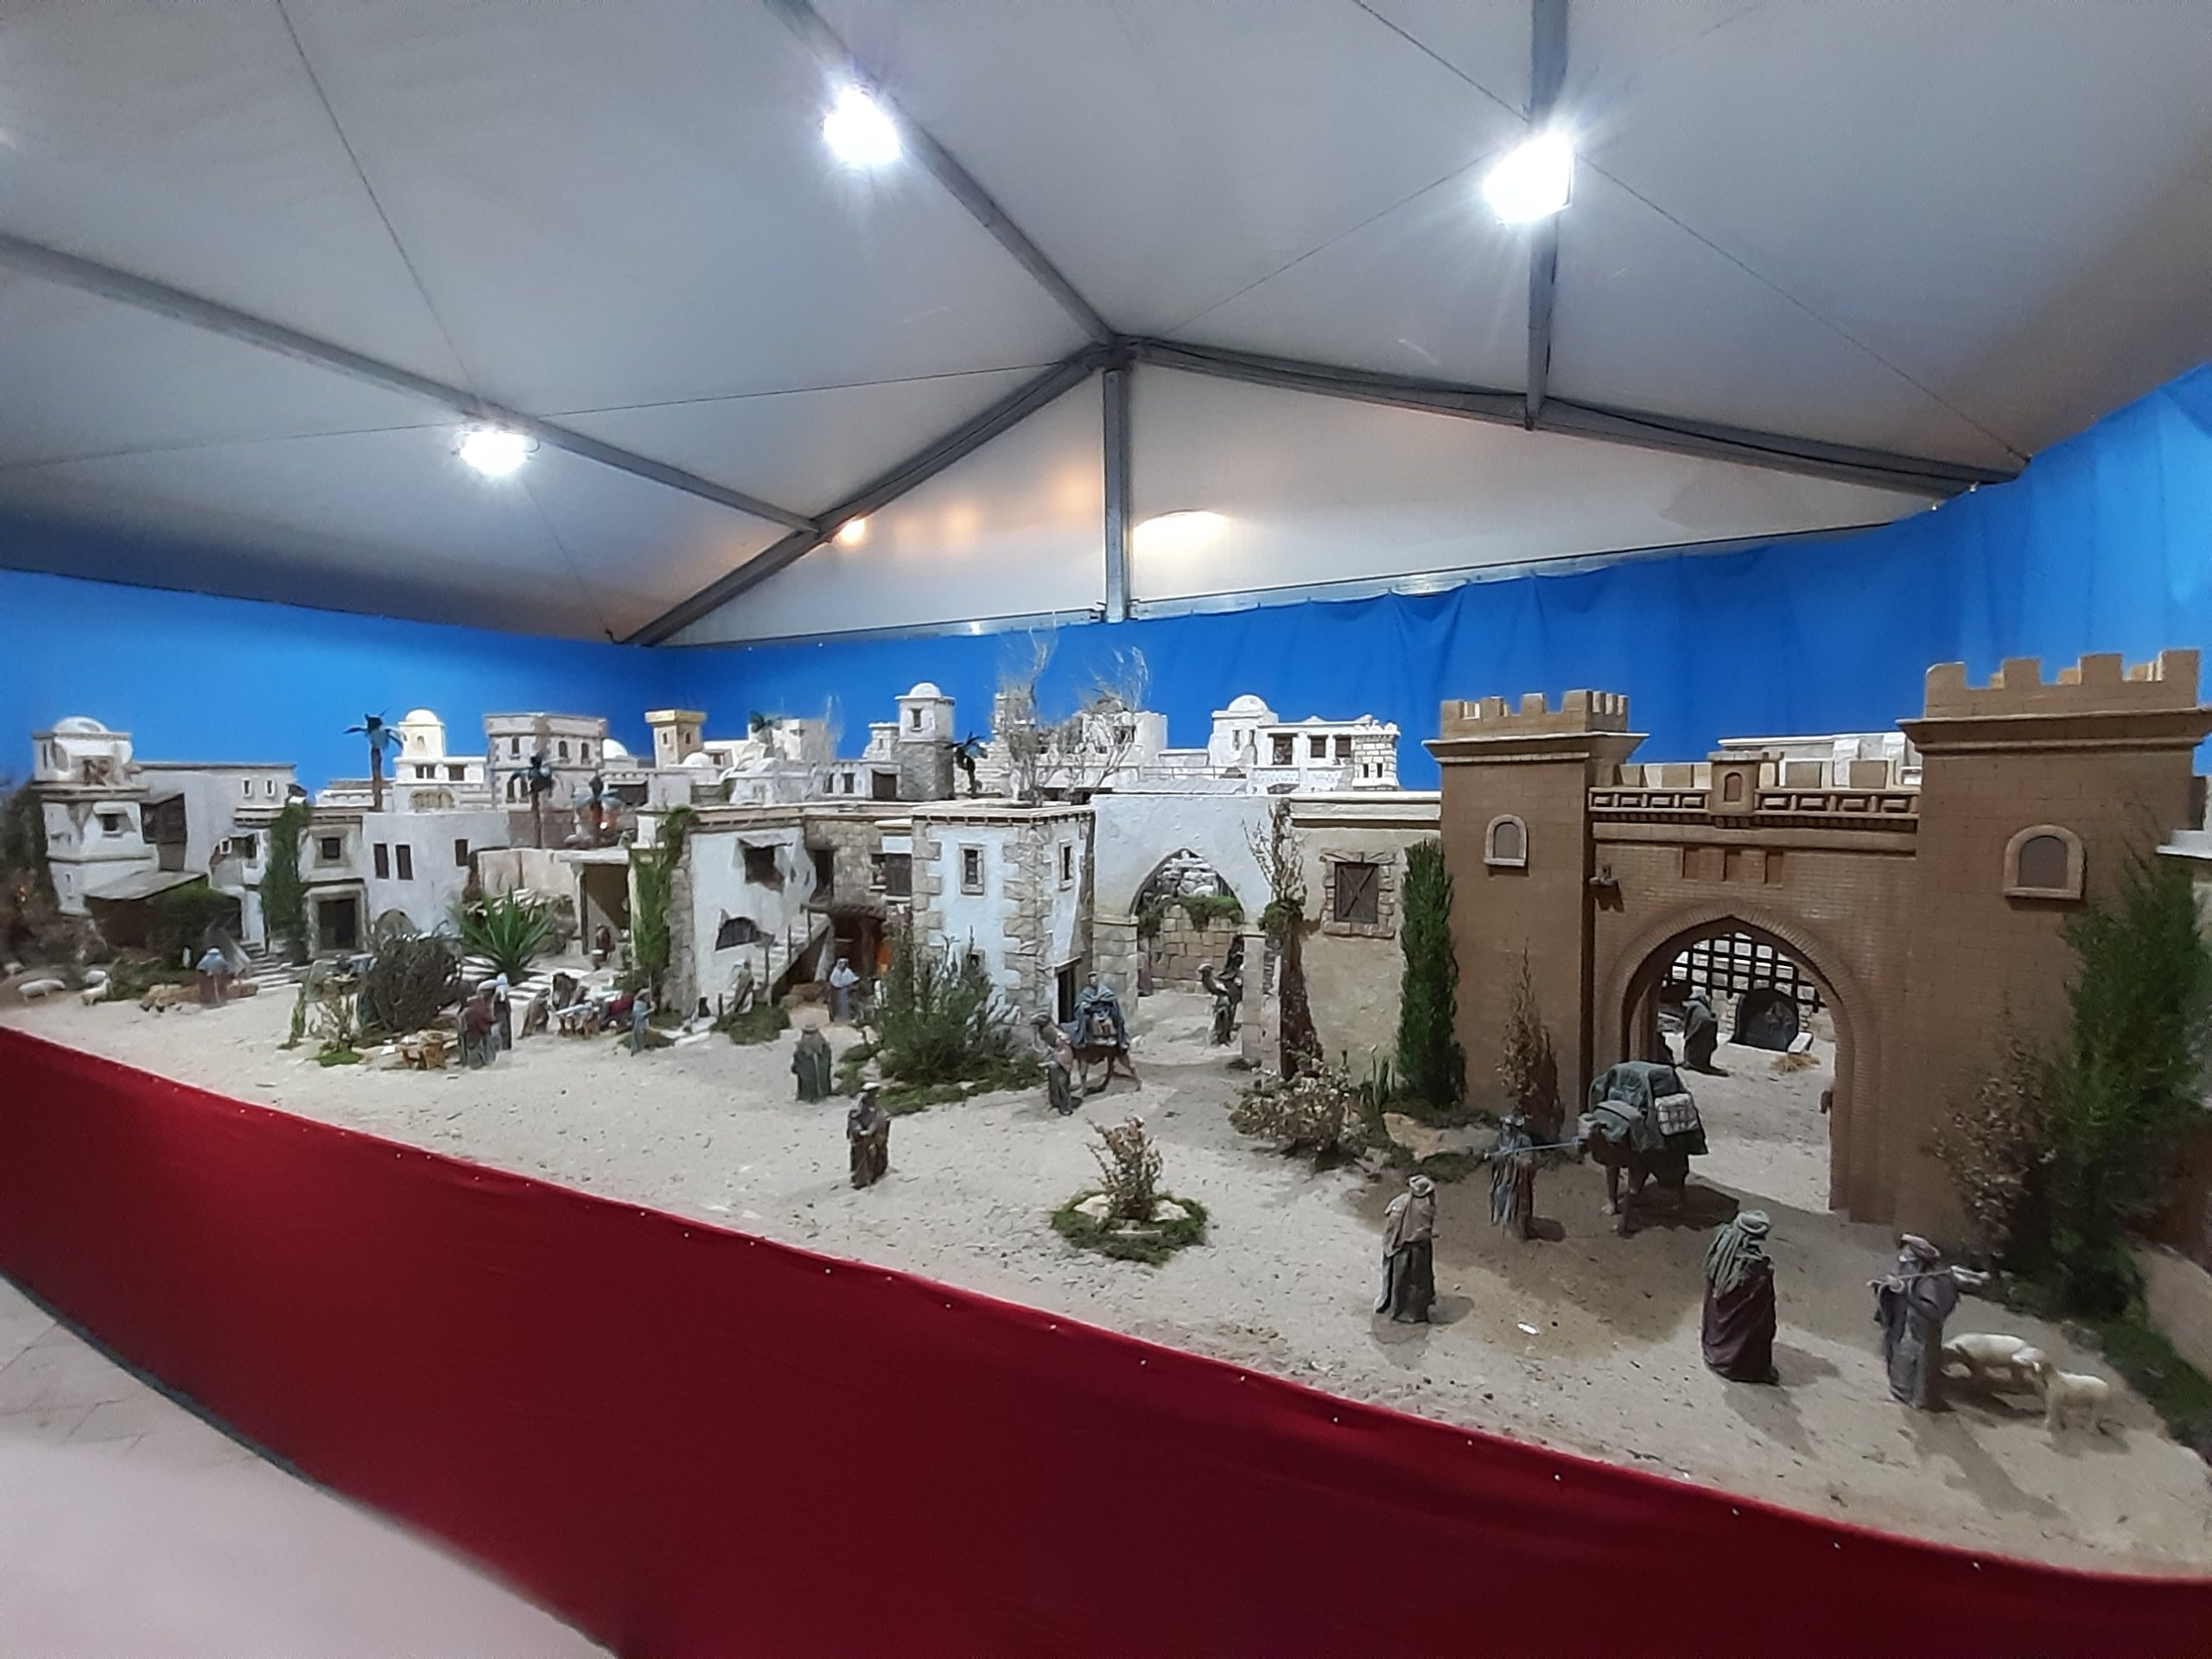 In San Fulgencio Village, the traditional Belen (Nativity Scene) was unveiled